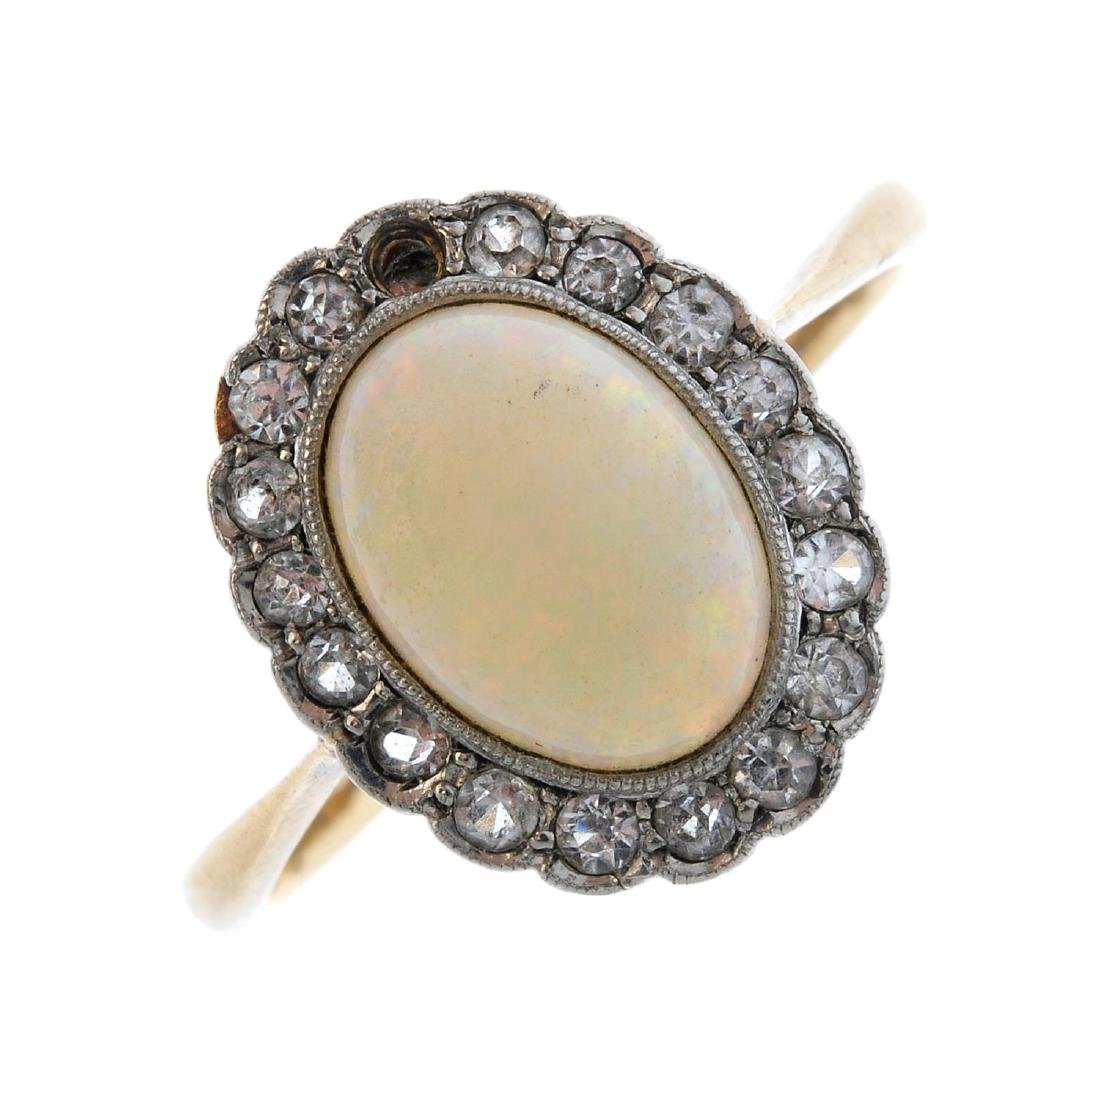 An opal and cubic zirconia cluster ring. The oval opal